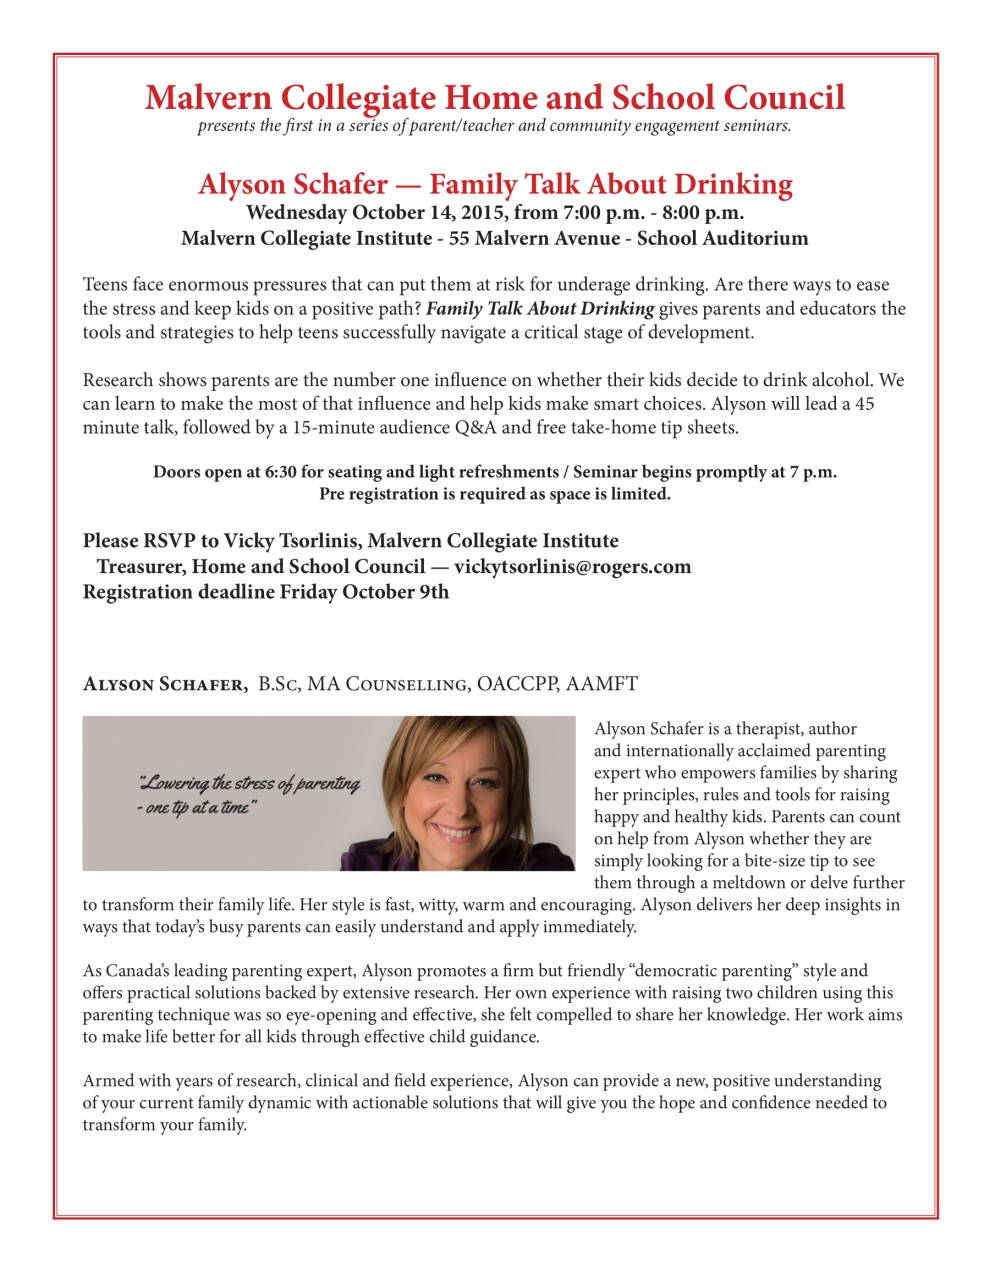 Free Parent Workshop at Malvern CI hosted by Alyson Schafer